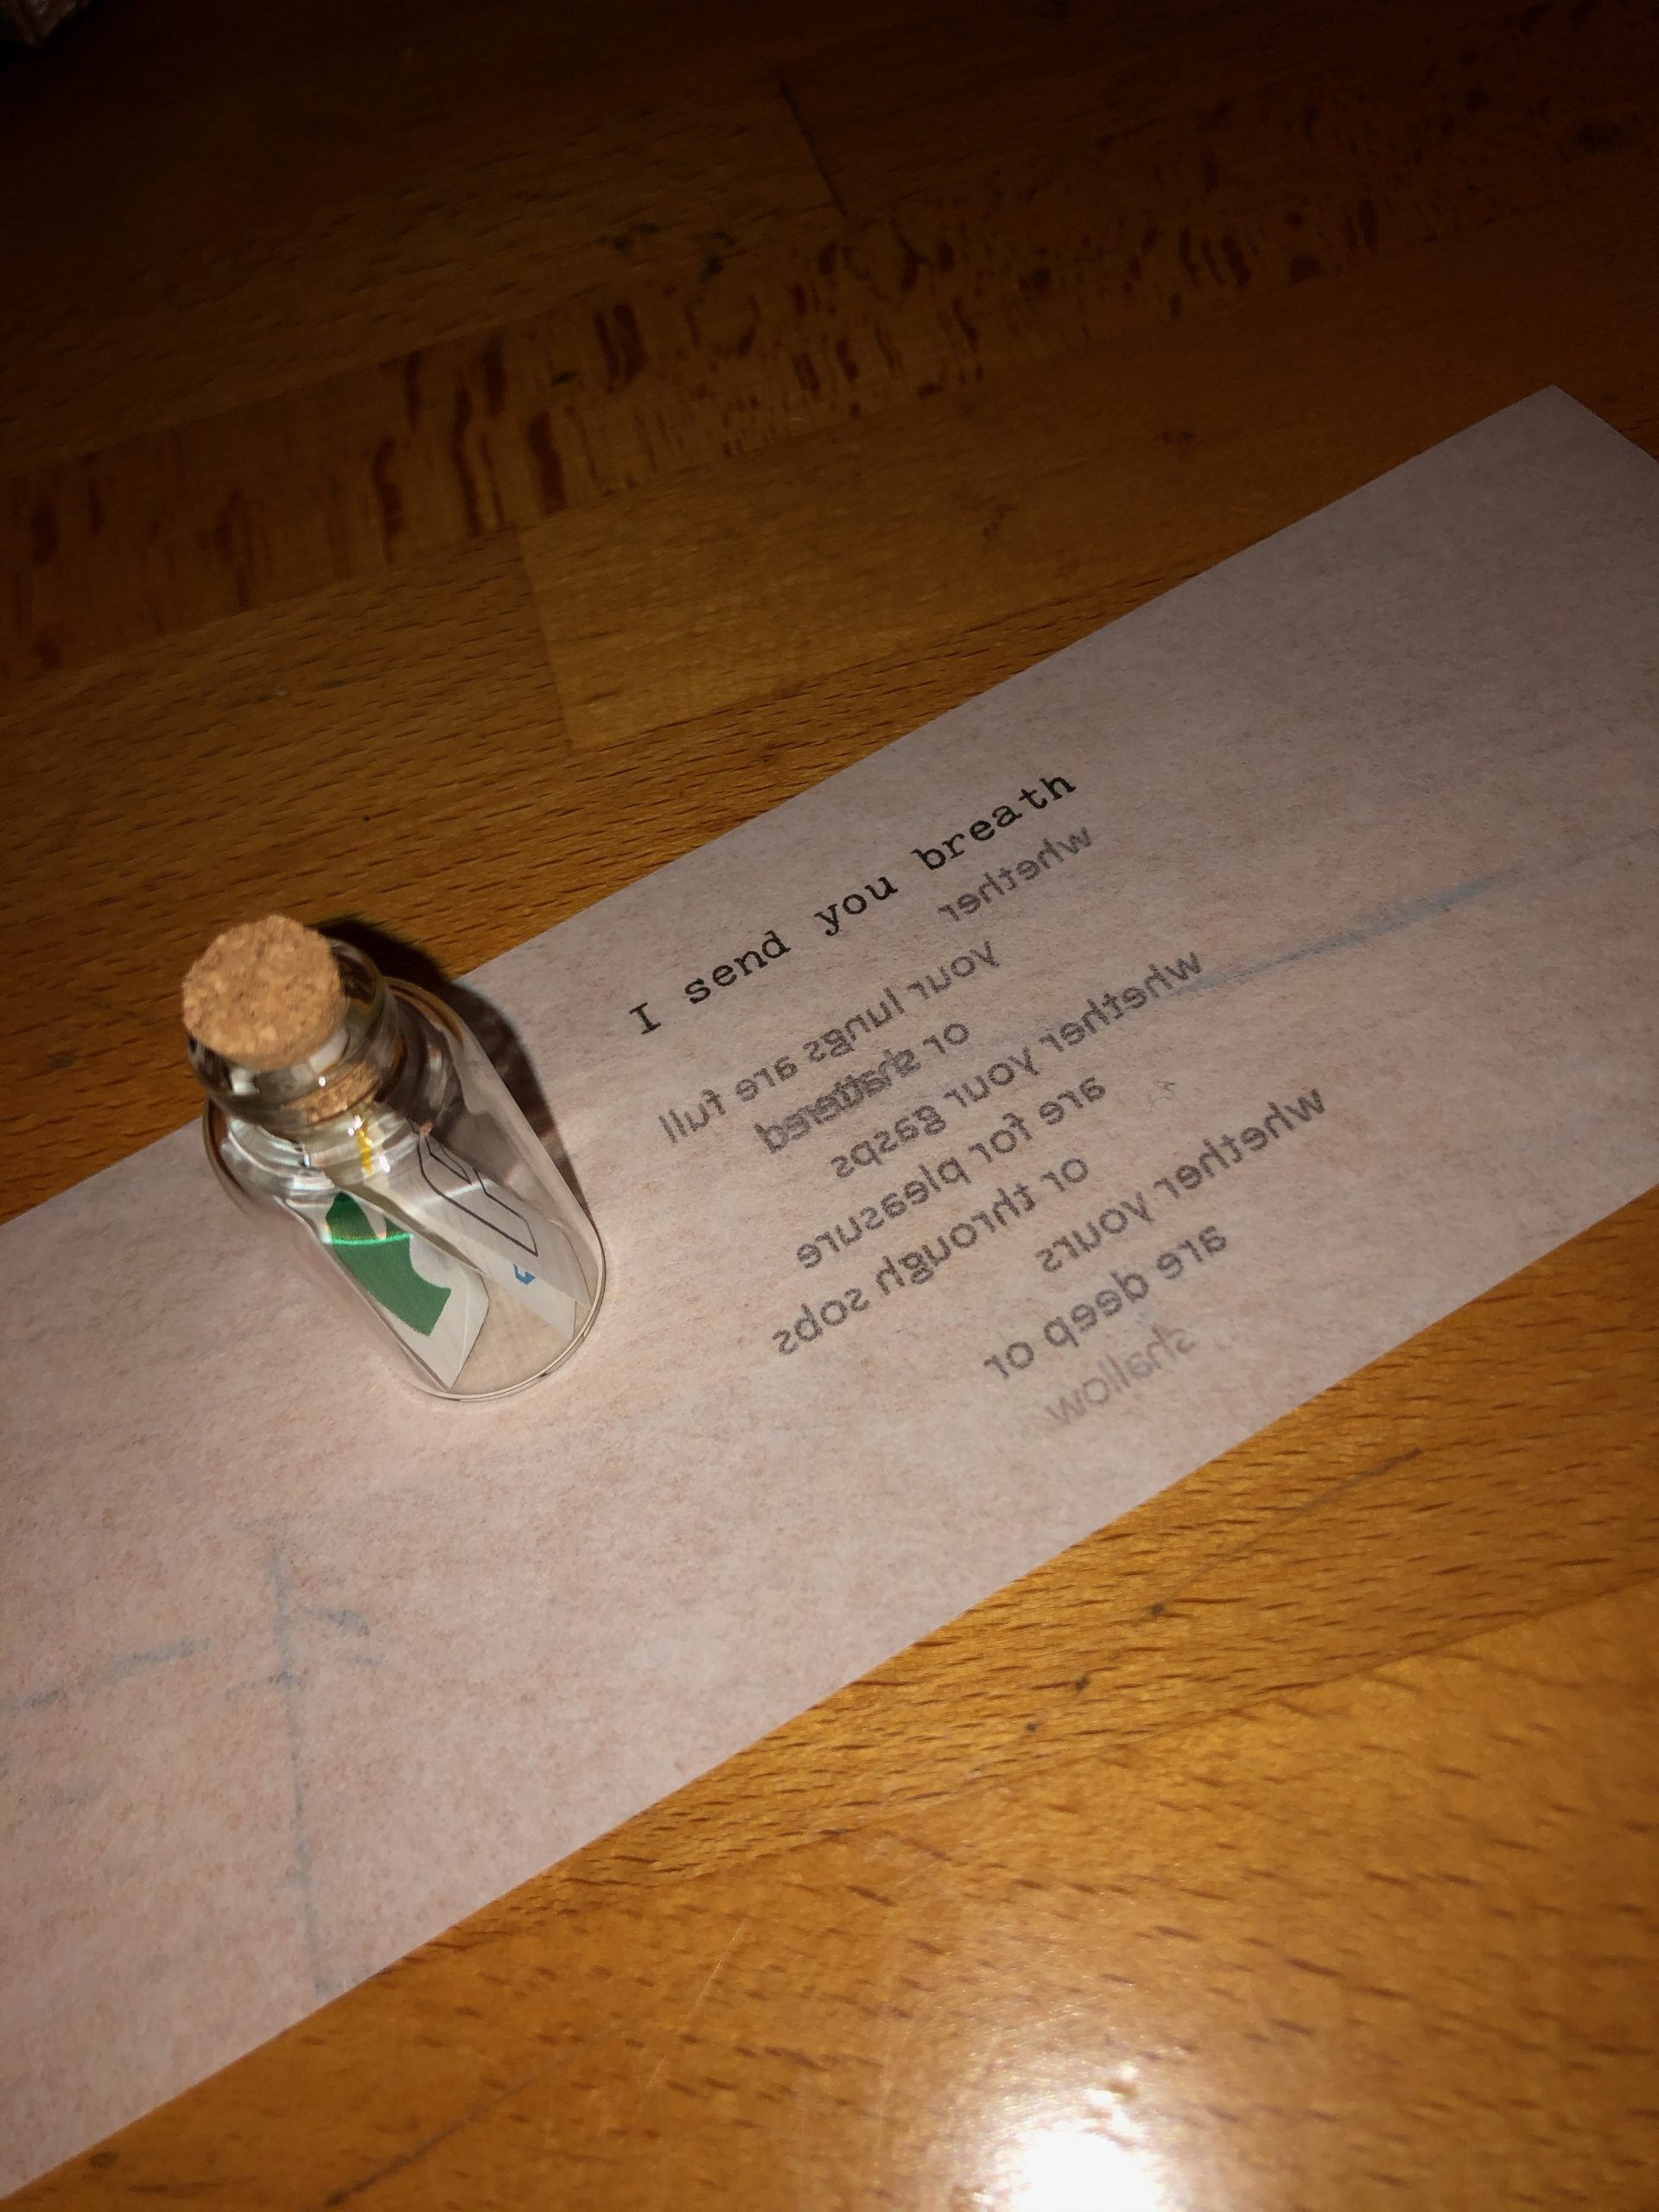 "Image of a miniature bottle with a note inside, and a strip of transparent paper on a wooden surface. The transparency is upside down, so the words read backwards: ""I send you breath/ whether/ your lungs are full/ or shattered/ whether your gasps/ are for pleasure/ or through sobs/ whether yours/ are deep or/ shallow""."